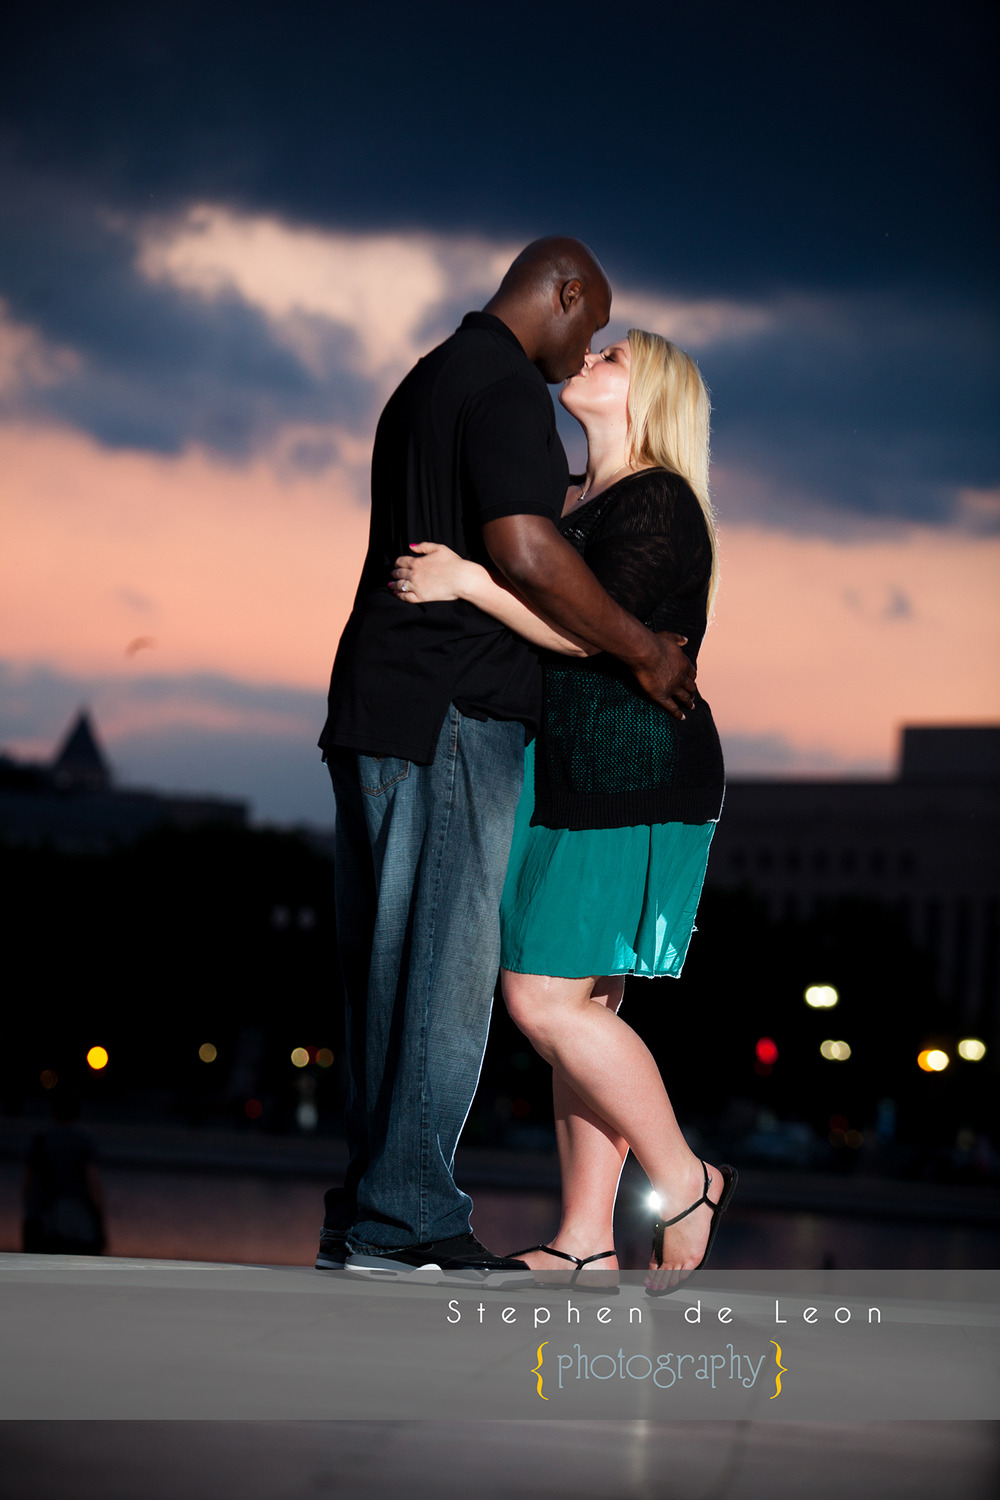 Washington_DC_Engagement Photos_Coleman028.jpg